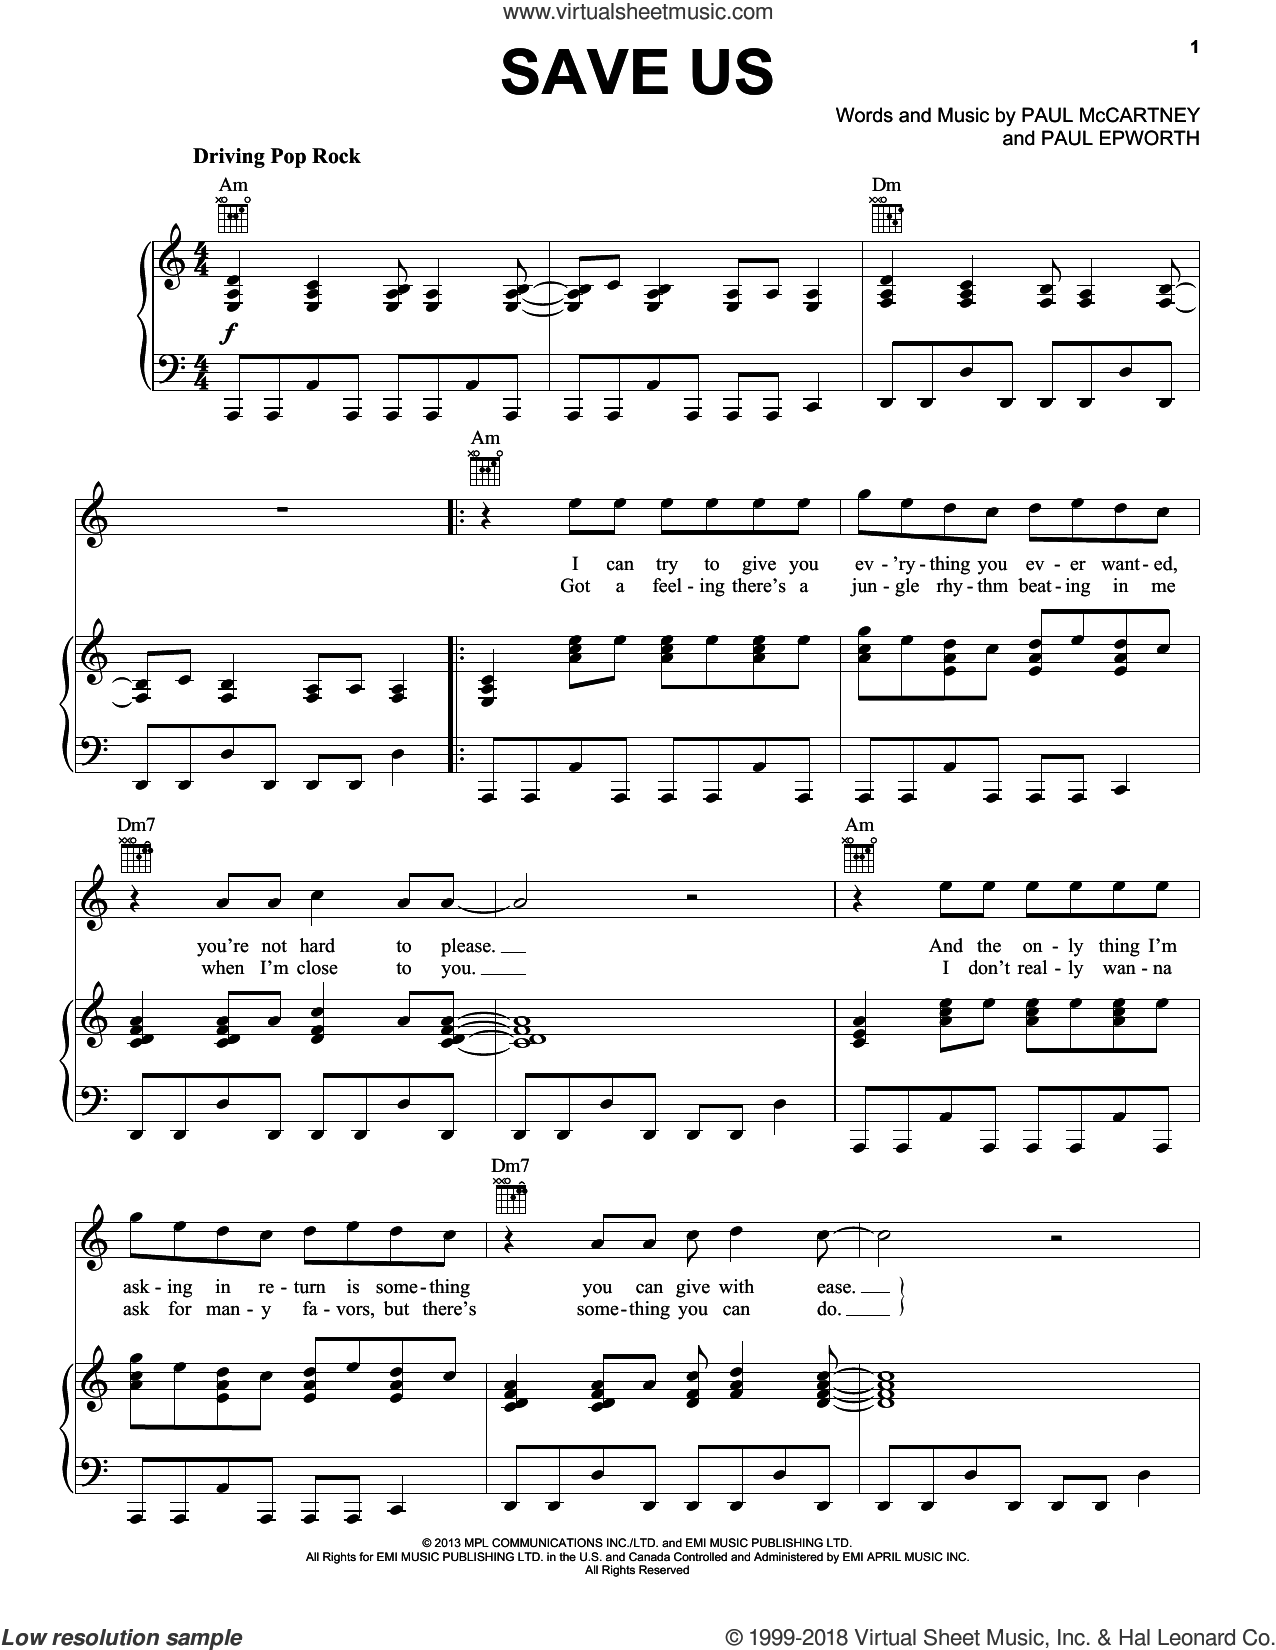 Save Us sheet music for voice, piano or guitar by Paul McCartney and Paul Epworth. Score Image Preview.